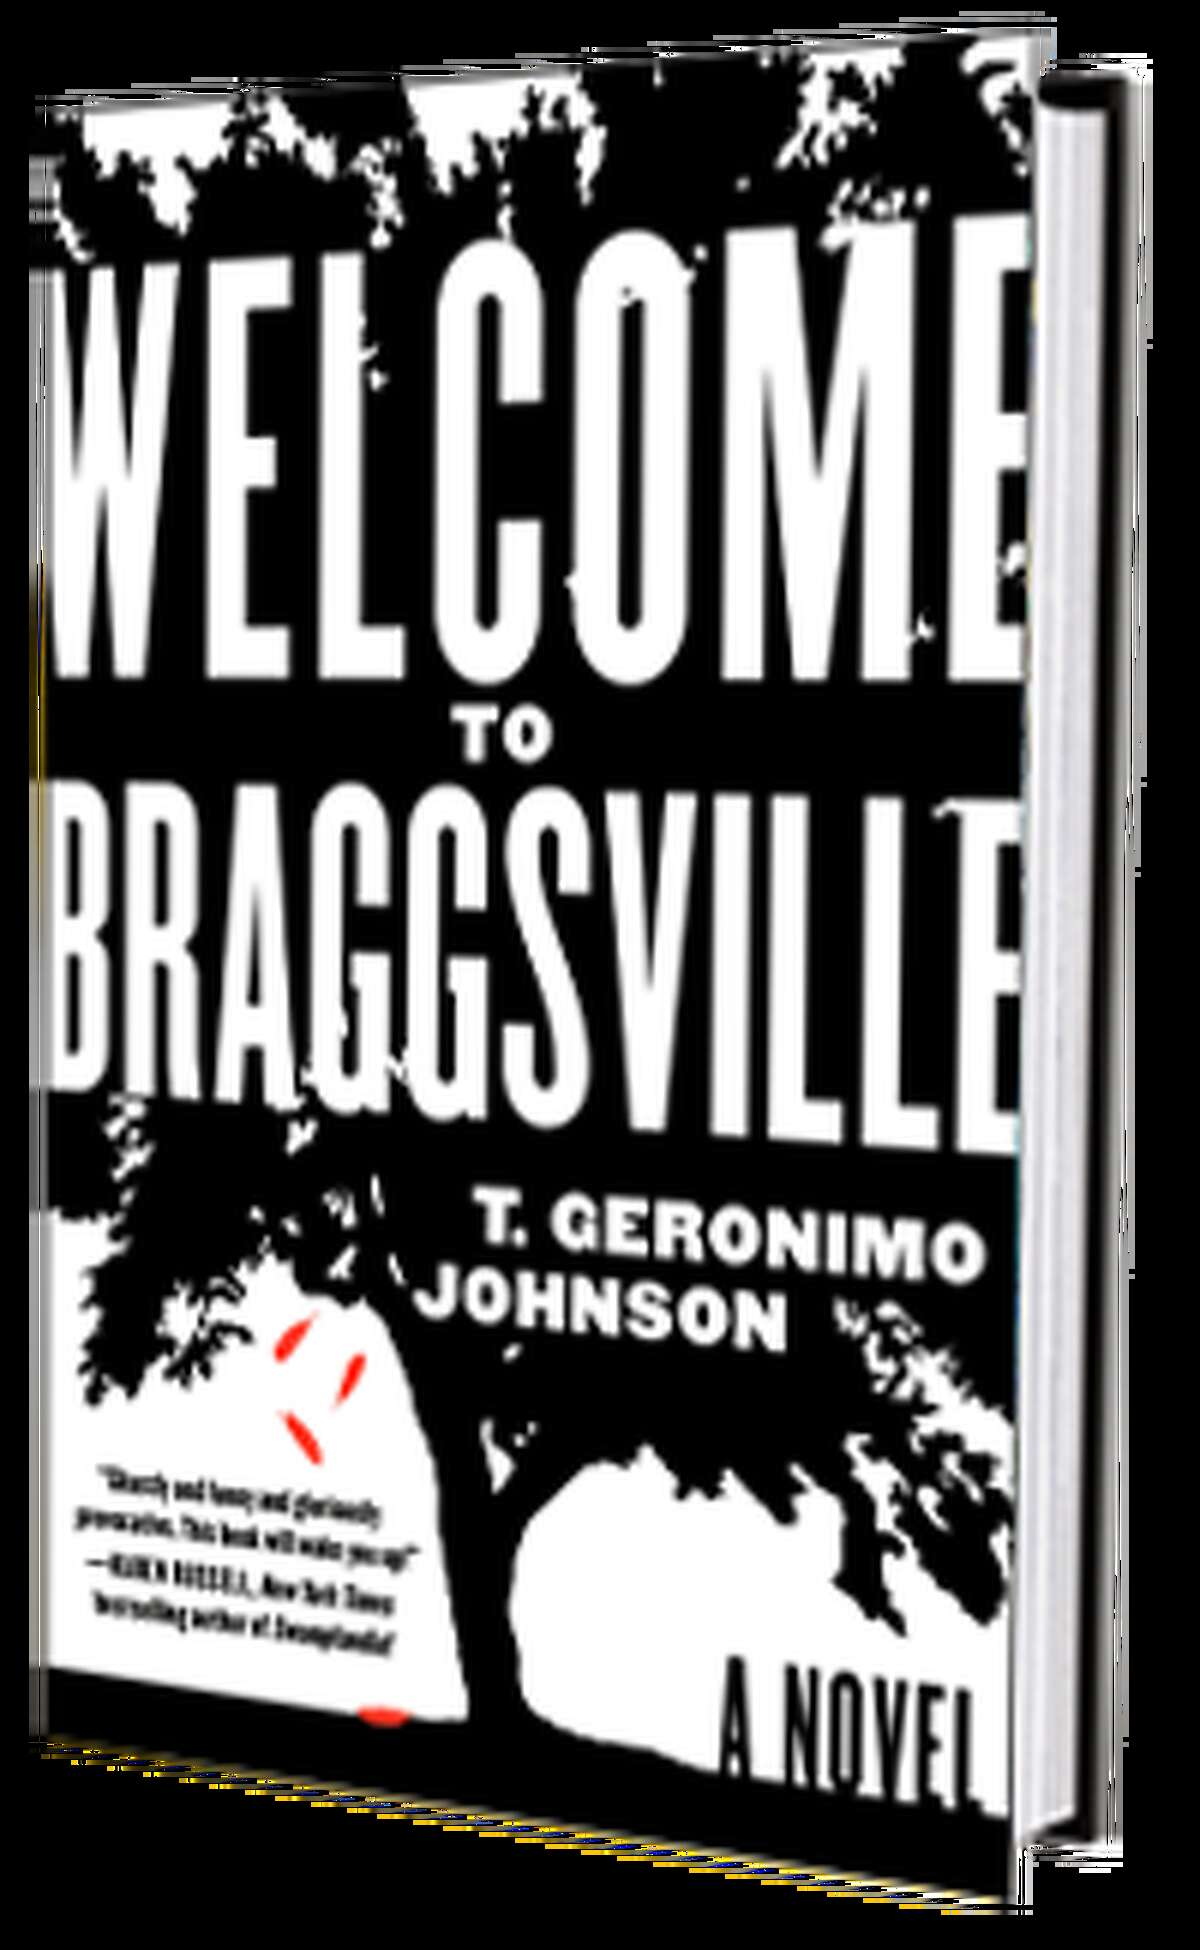 """""""Welcome to Braggsville,"""" by T. Geronimo Johnson"""